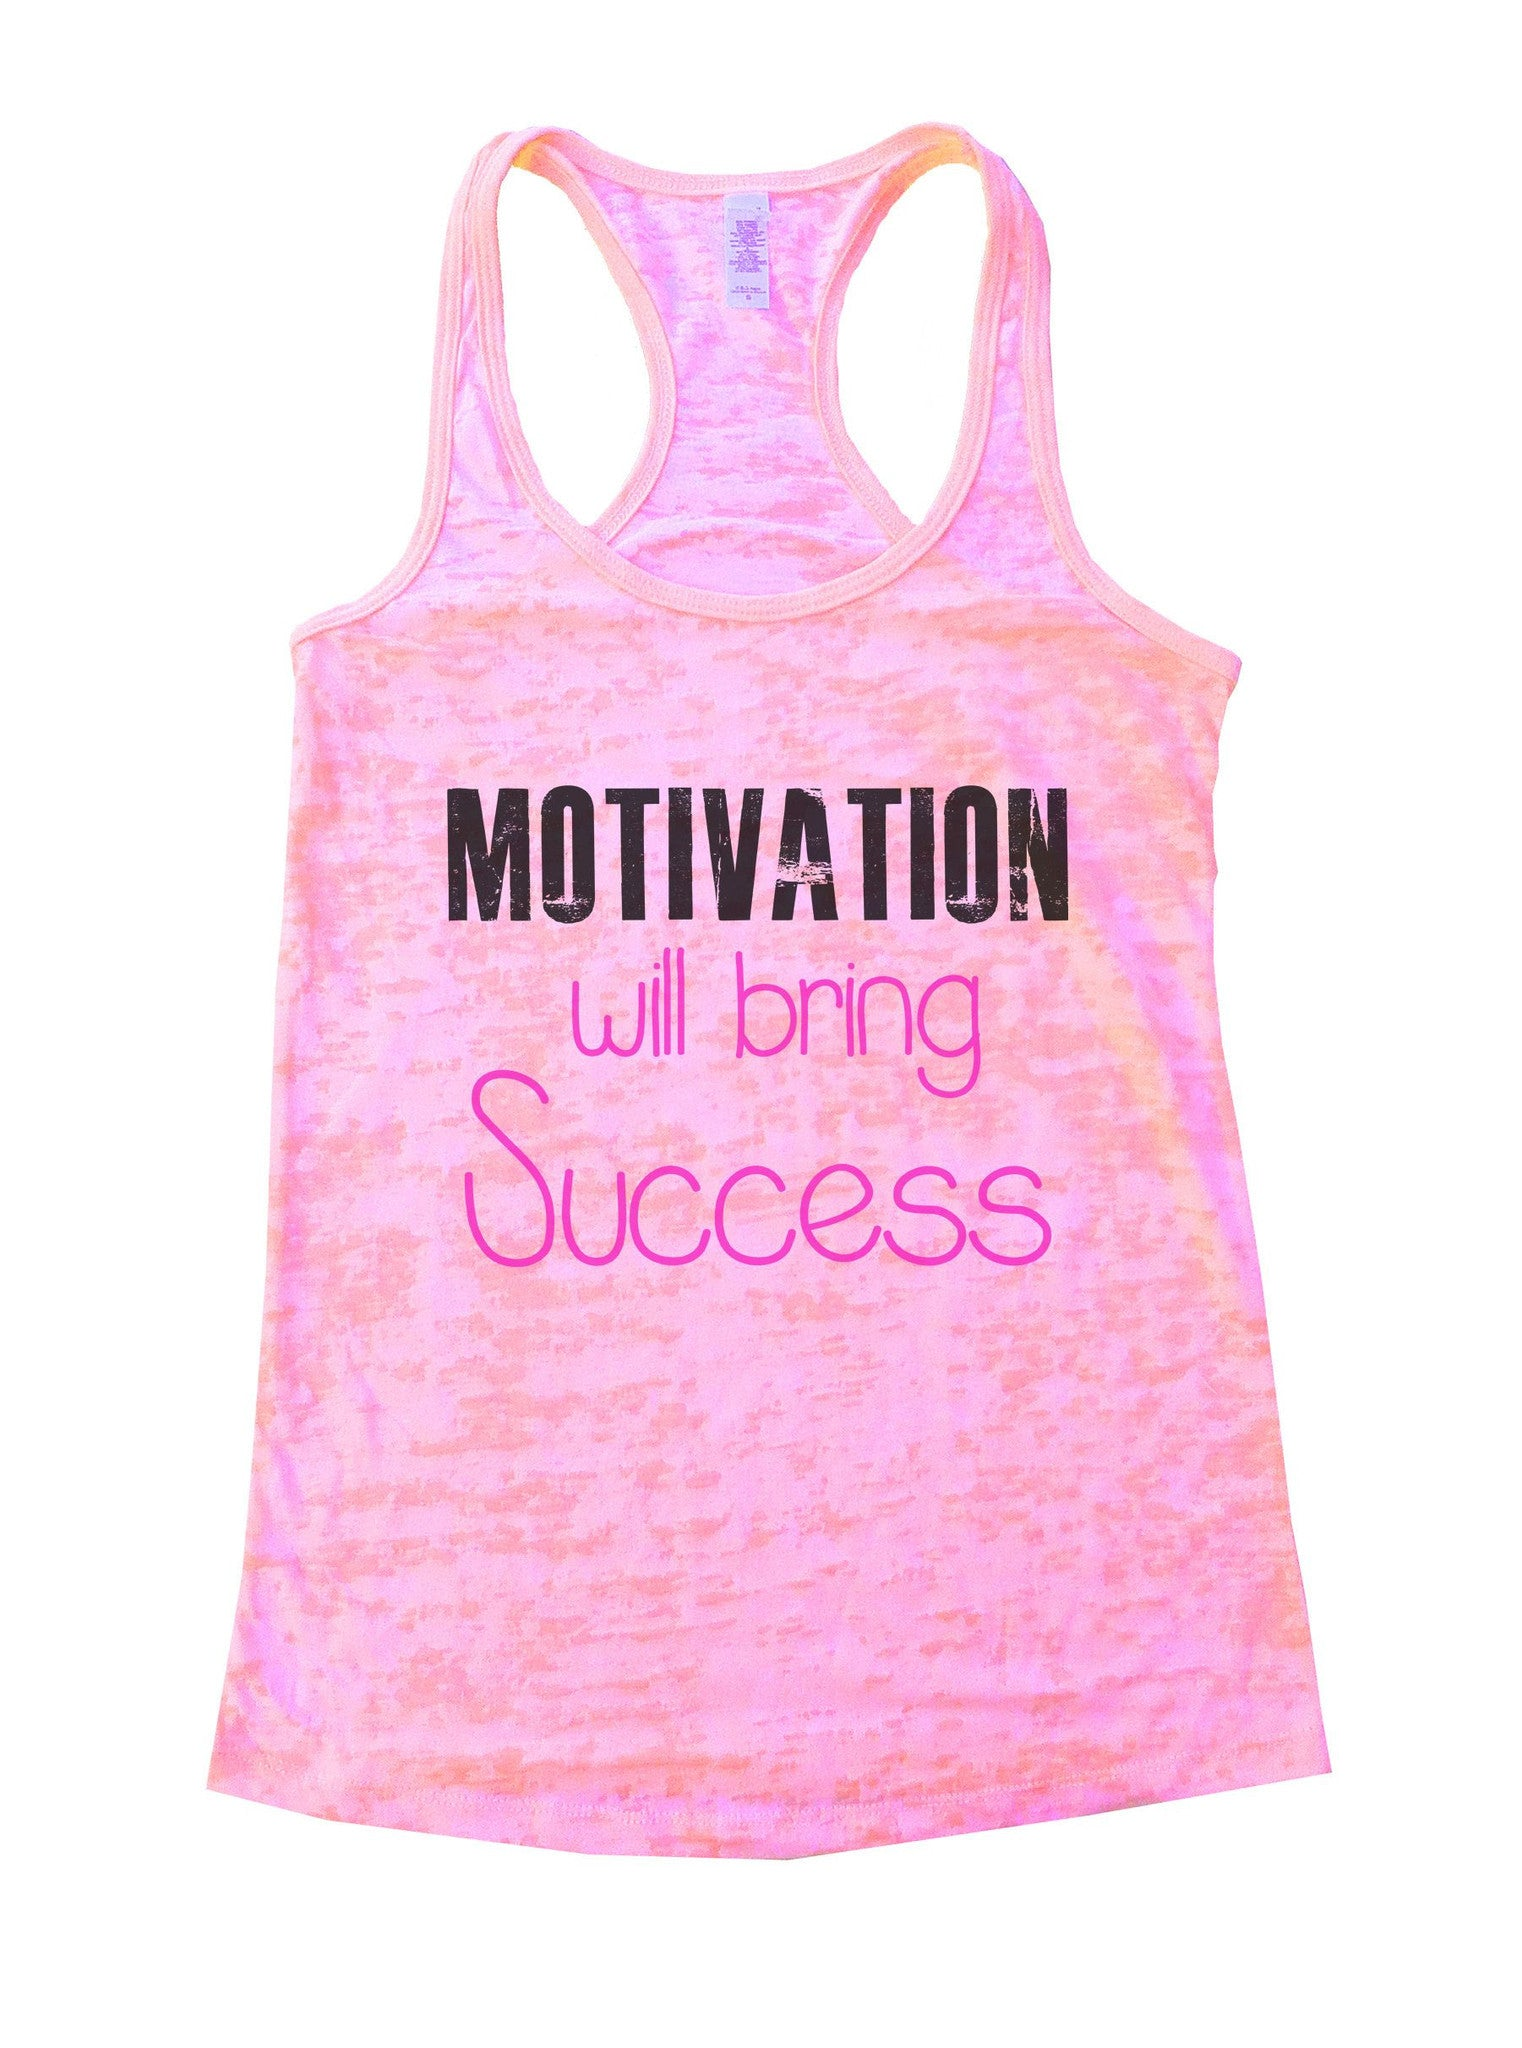 Motivation Will Bring Success Burnout Tank Top By BurnoutTankTops.com - 682 - Funny Shirts Tank Tops Burnouts and Triblends  - 2